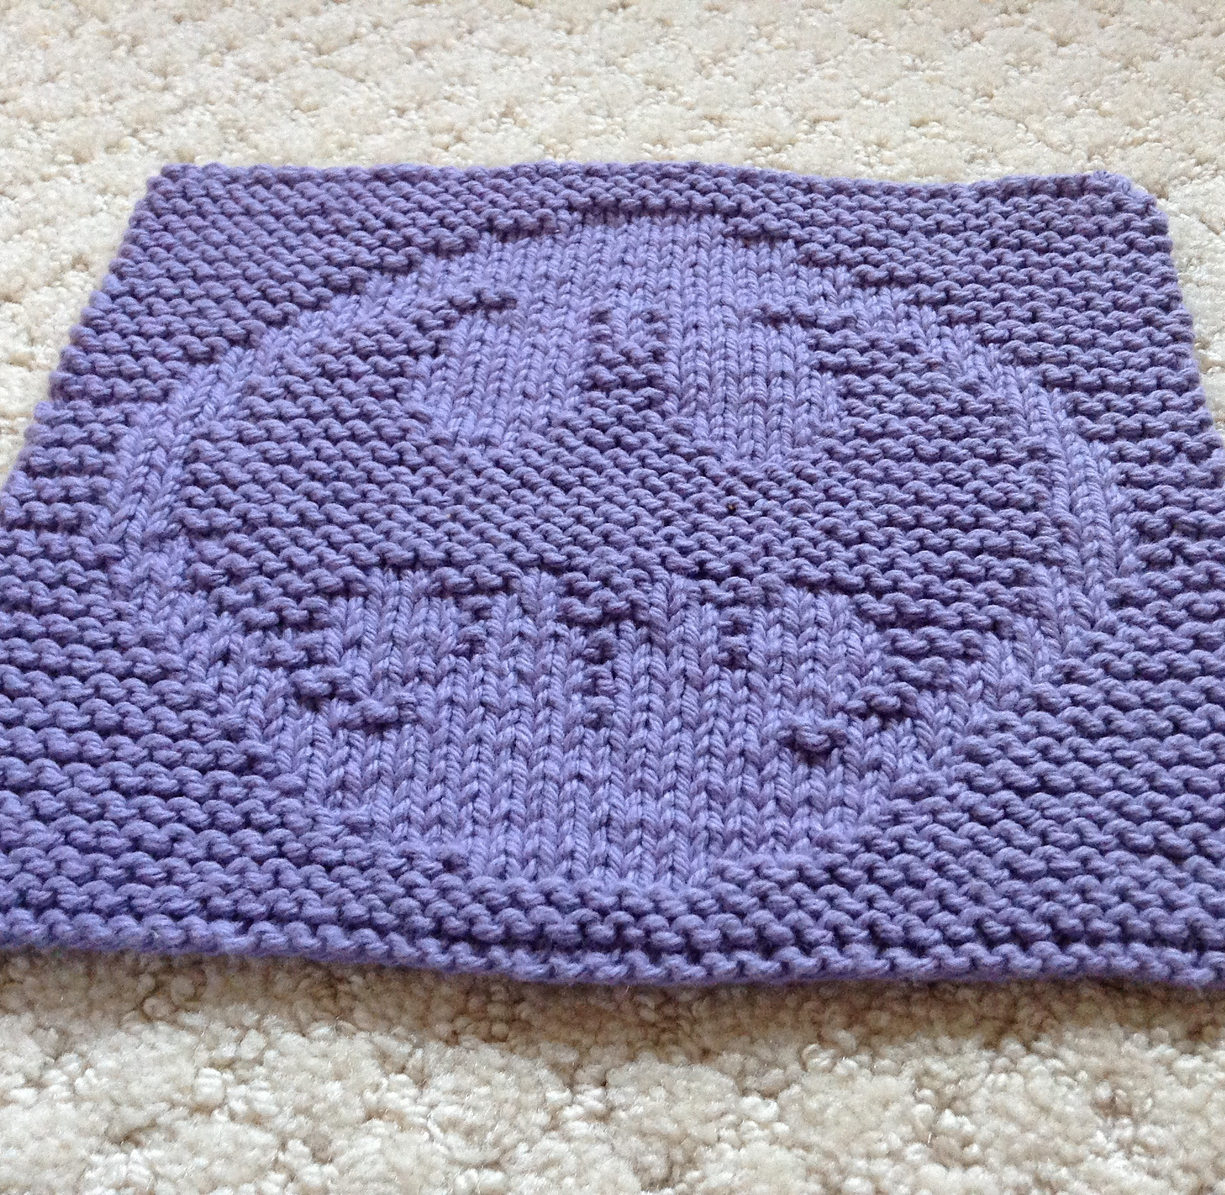 Free Knitted Dishcloth Pattern Free Knitting Patterns For Washclothes